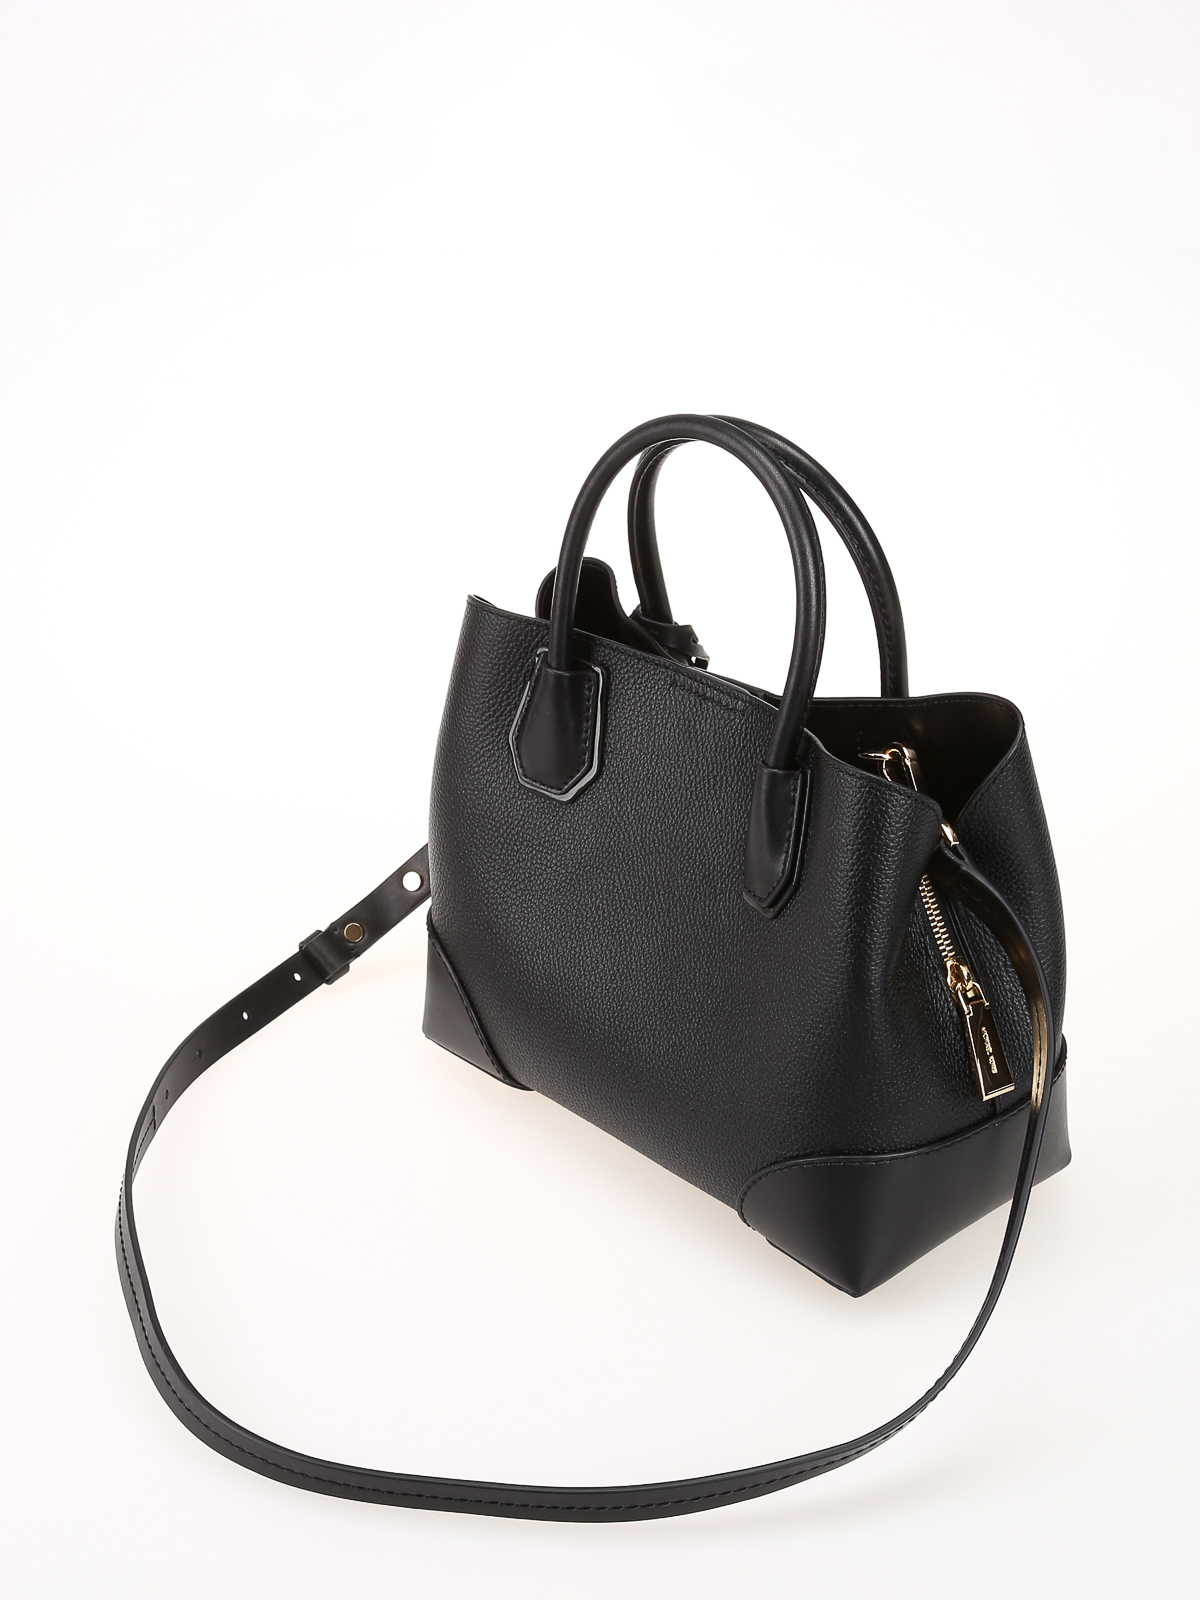 michael kors mercer gallery black small tote totes bags 30h7gz5t1t001. Black Bedroom Furniture Sets. Home Design Ideas